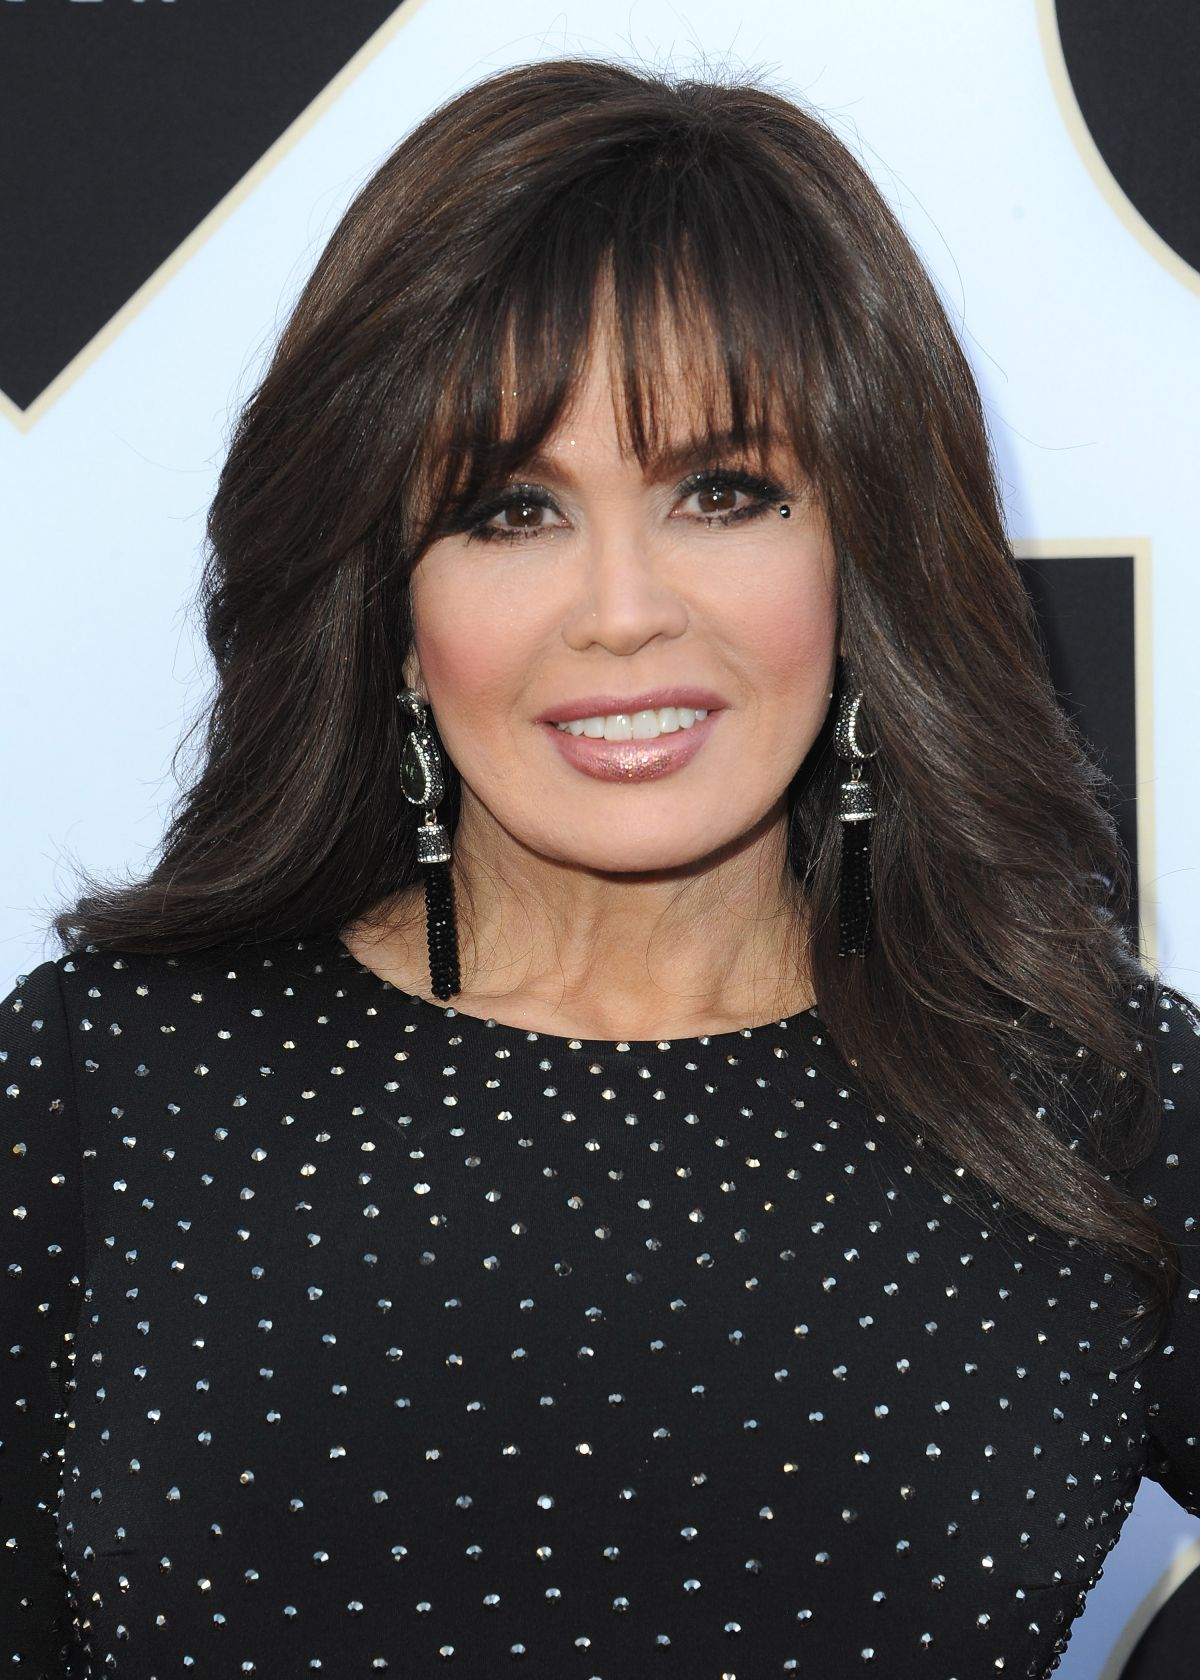 Donny Osmond Personal Website - Stay Connected Marie osmond first wedding pictures